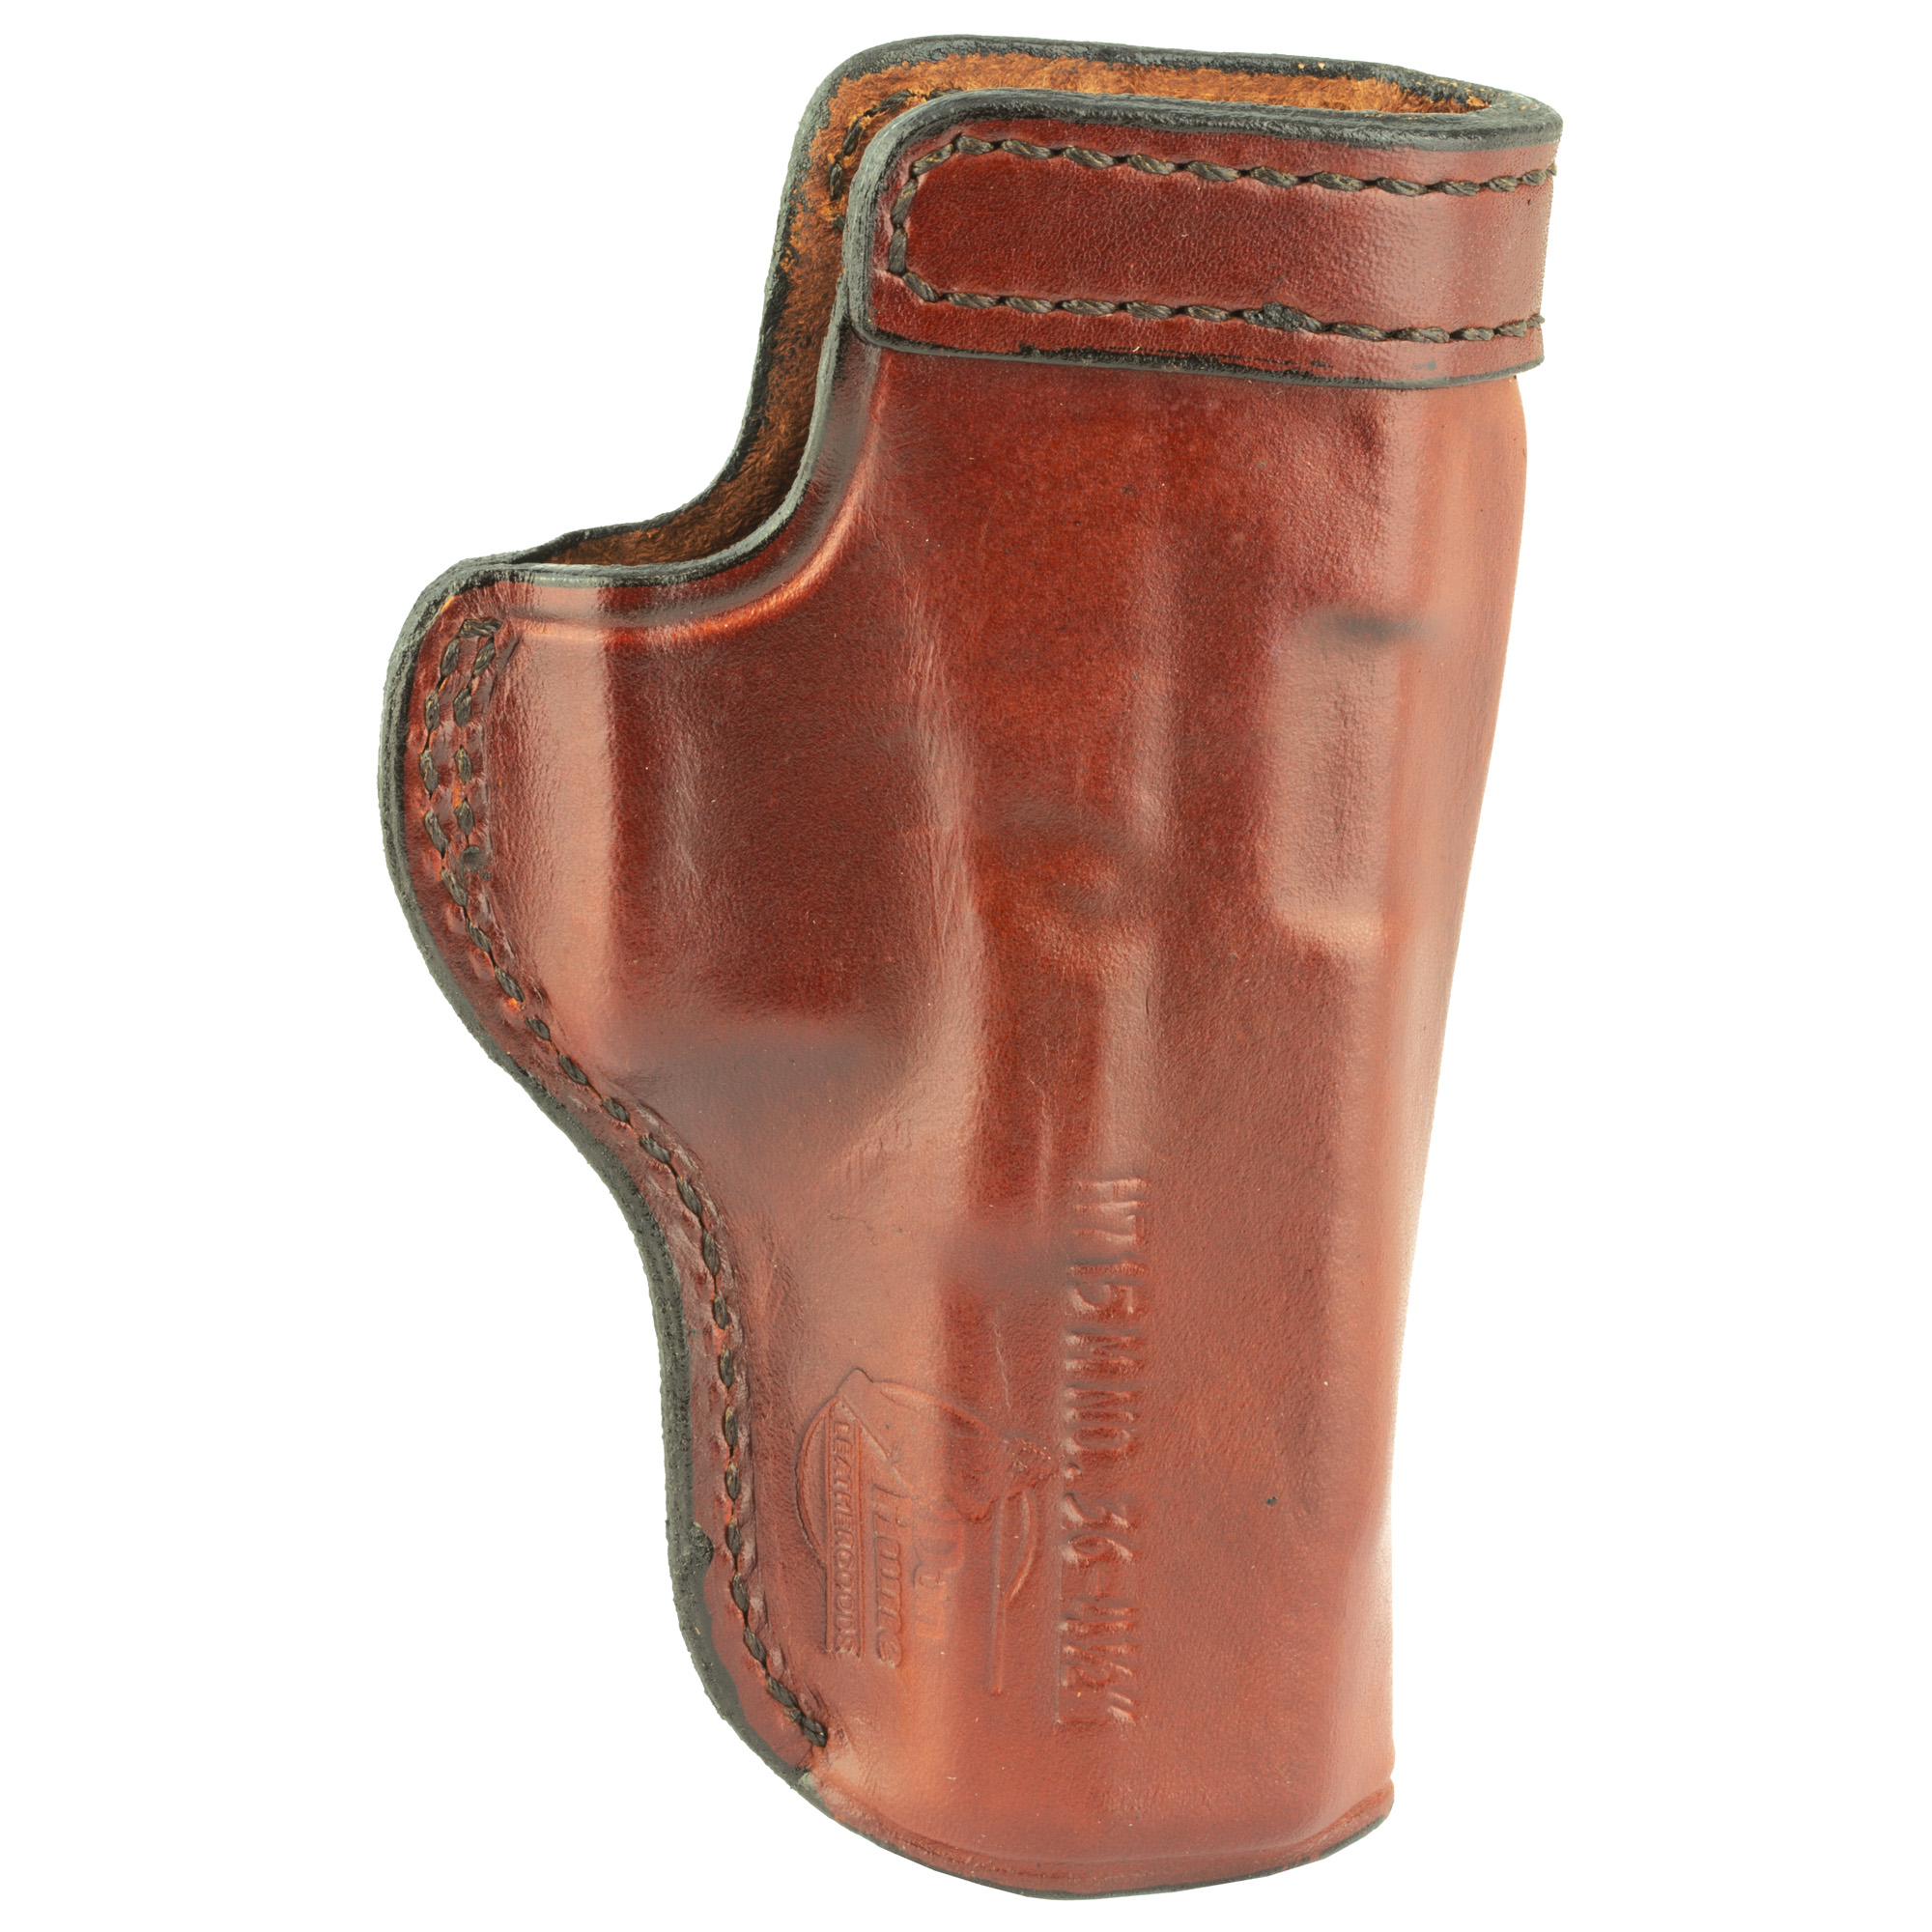 """The H715-M W.C. is Don Hume's best selling holster for concealment carry. This Inside the Waistband carry holster is made of lightweight leather and form molded Open top with reinforced mouth band to allow for easy one-handed return to holster. The H715-M W.C. carries the firearm in a neutral cant and can be worn strong side"""" cross draw"""" or behind the hip. Features a sturdy spring metal clip that fits belts up to 1 3/4""""."""